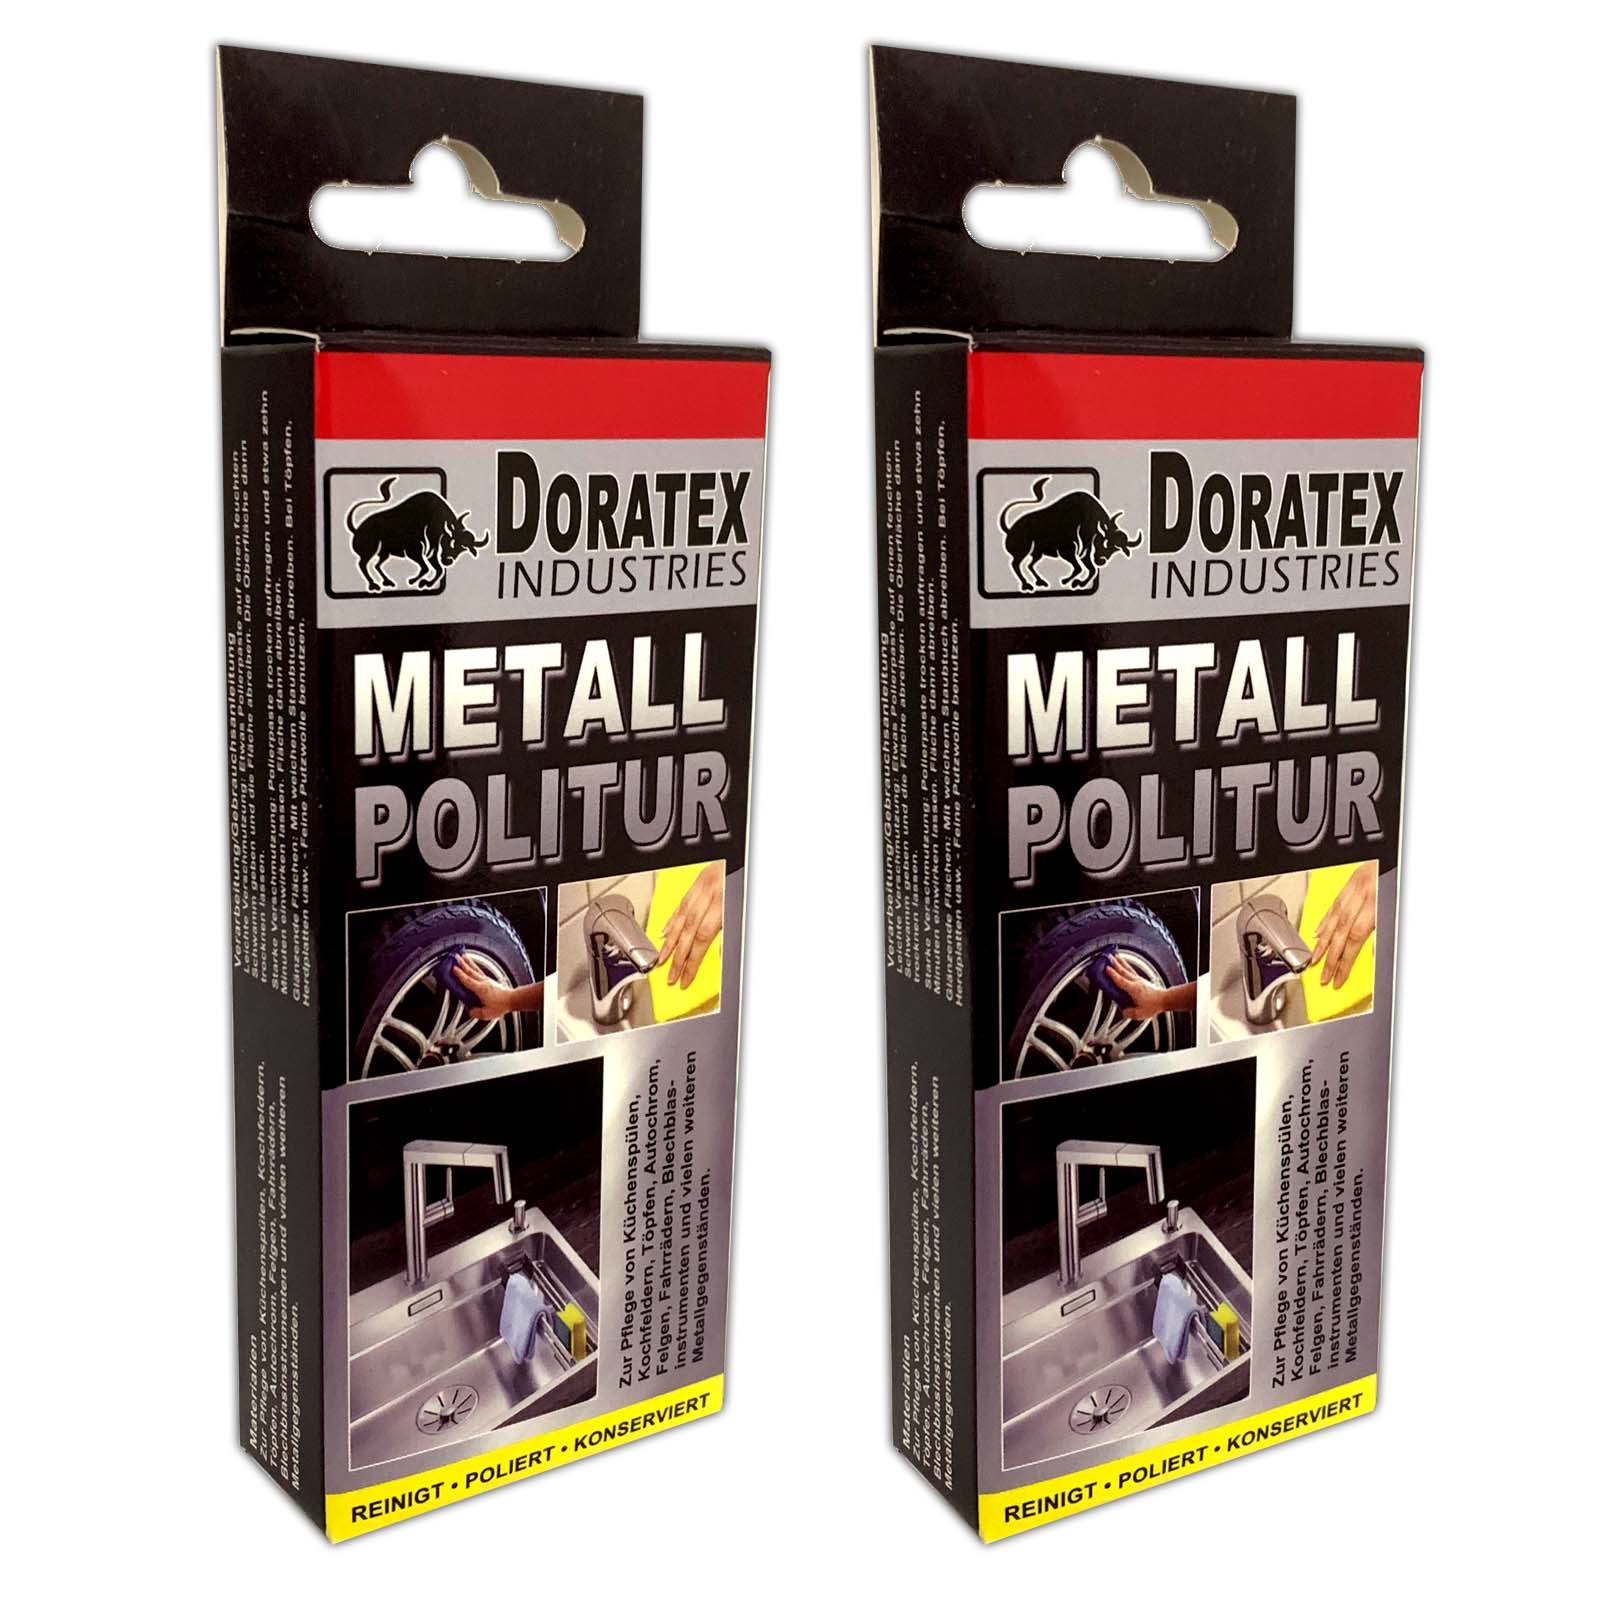 Doratex Industries 2er Set Metall Politur | Polierpaste 10g | 2er_Metallpolitur